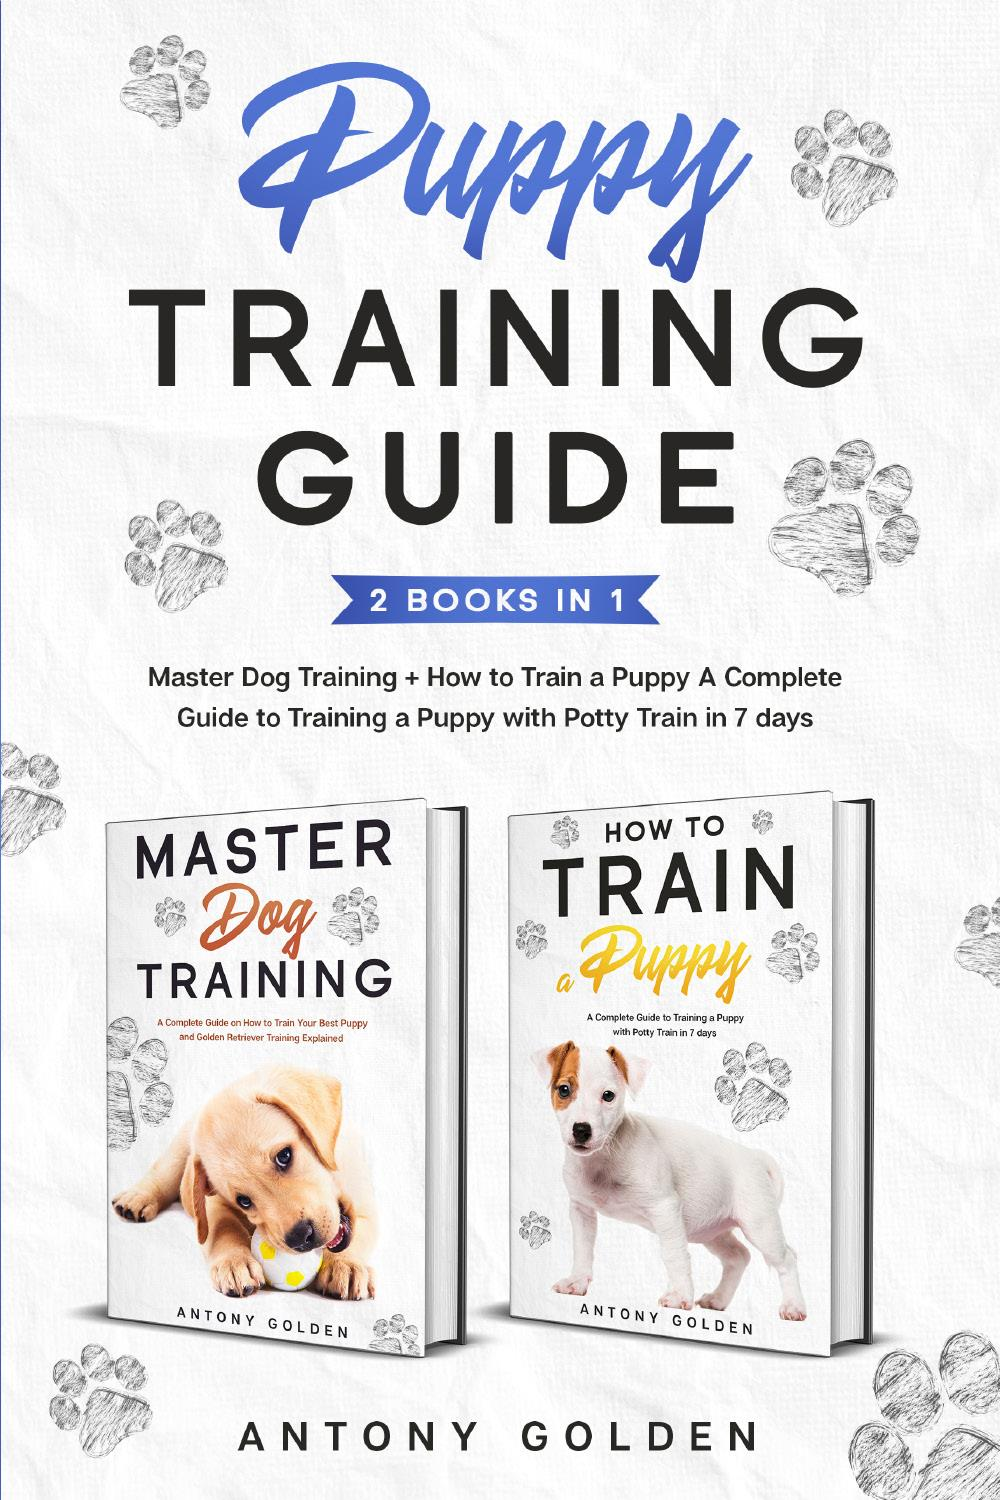 Puppy Training Guide (2 Books in 1). Master Dog Training + How to Train a Puppy A Complete Guide to Training a Puppy with Potty Train in 7 days